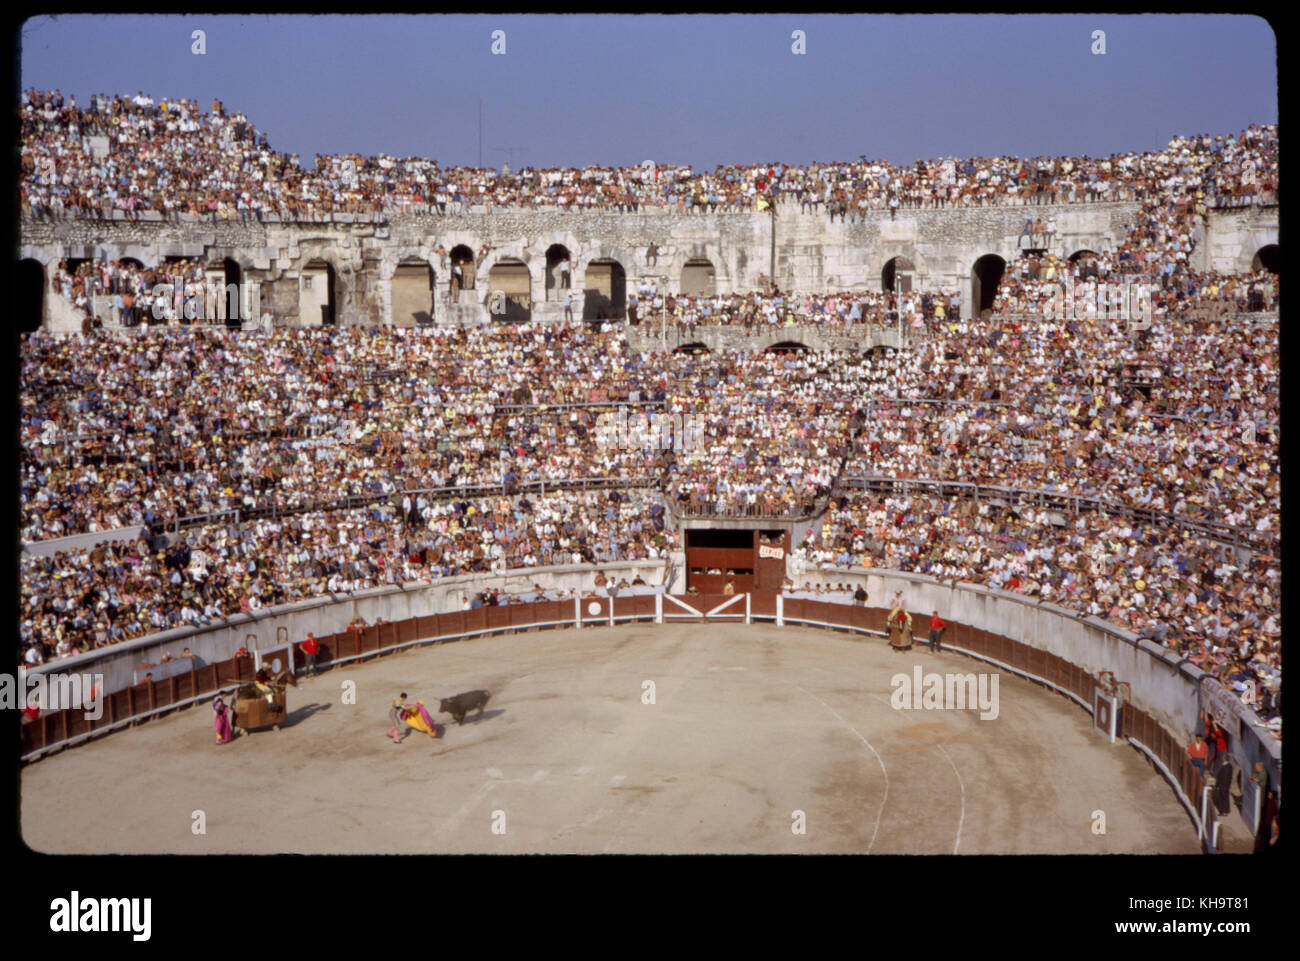 Bullfight and Arena, Nimes, France, 1961 - Stock Image